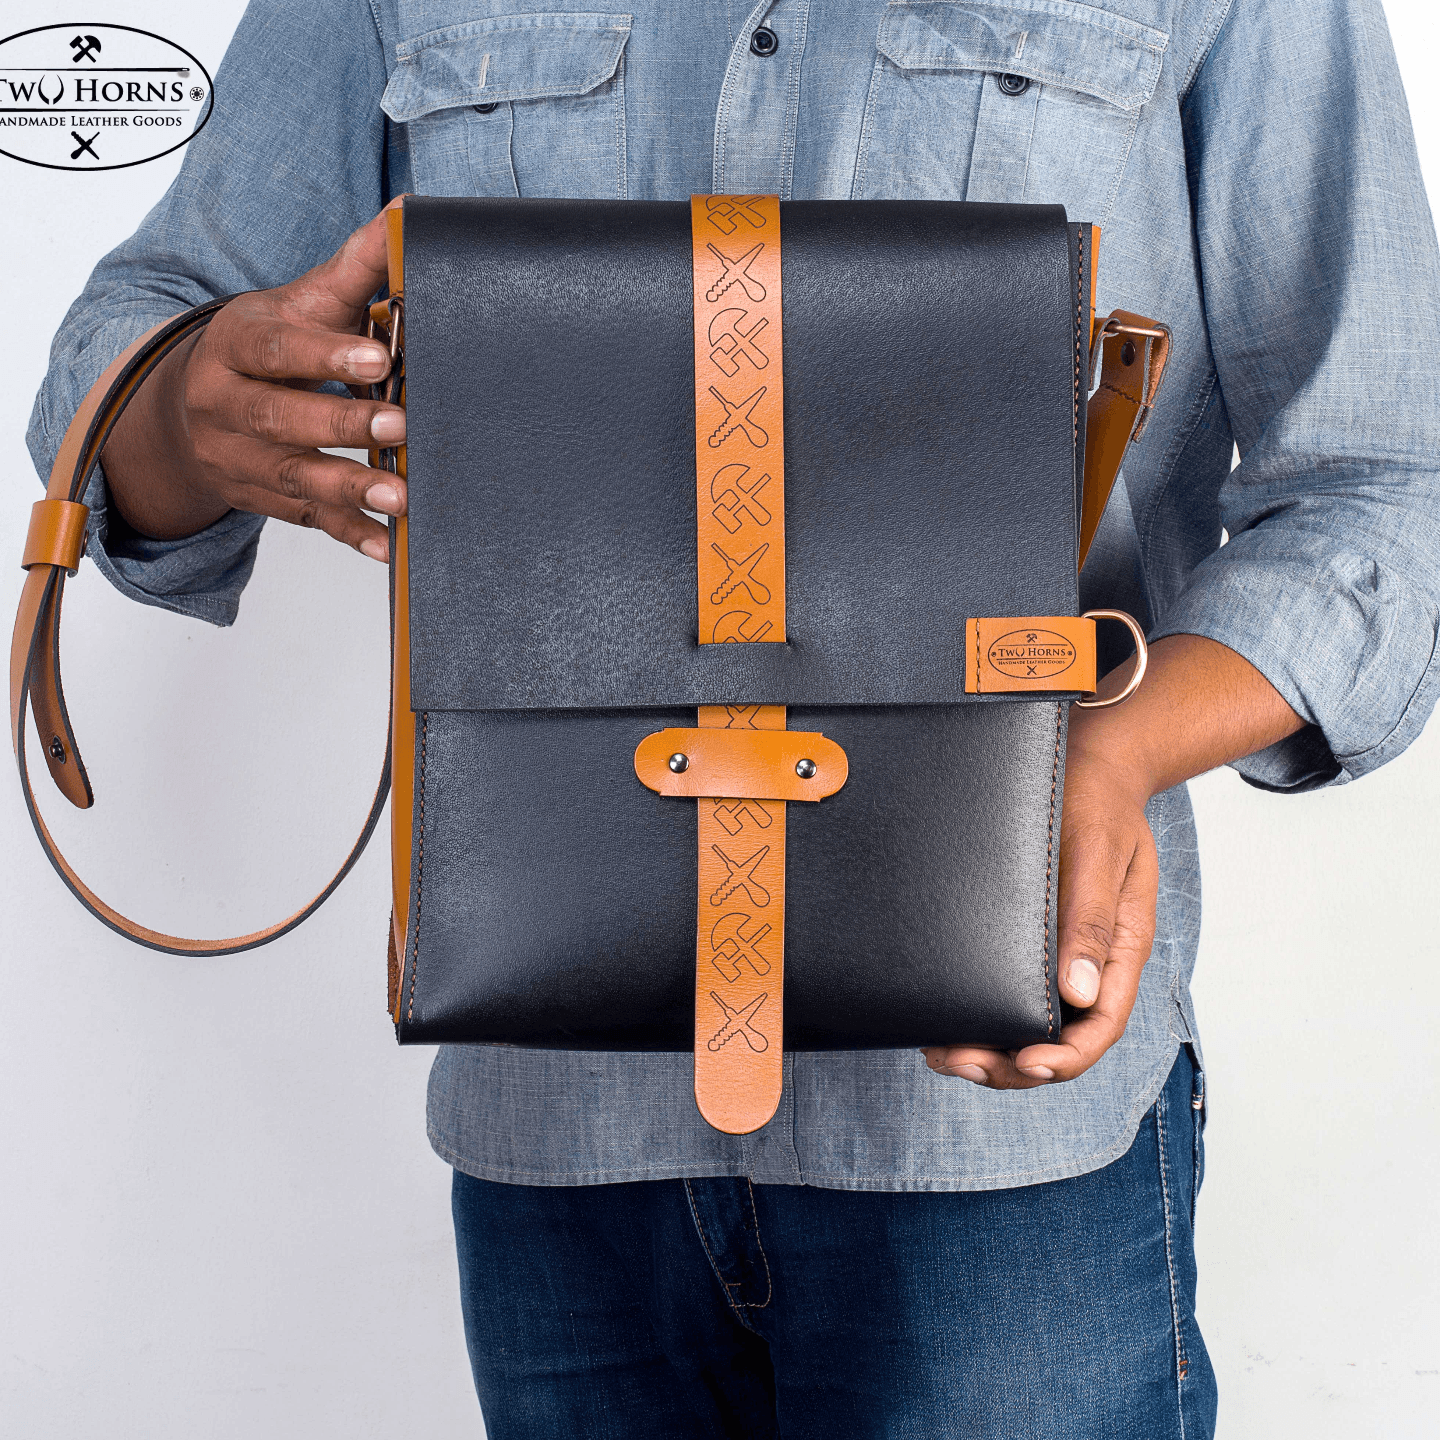 Messenger bag - Free style - Two Horns